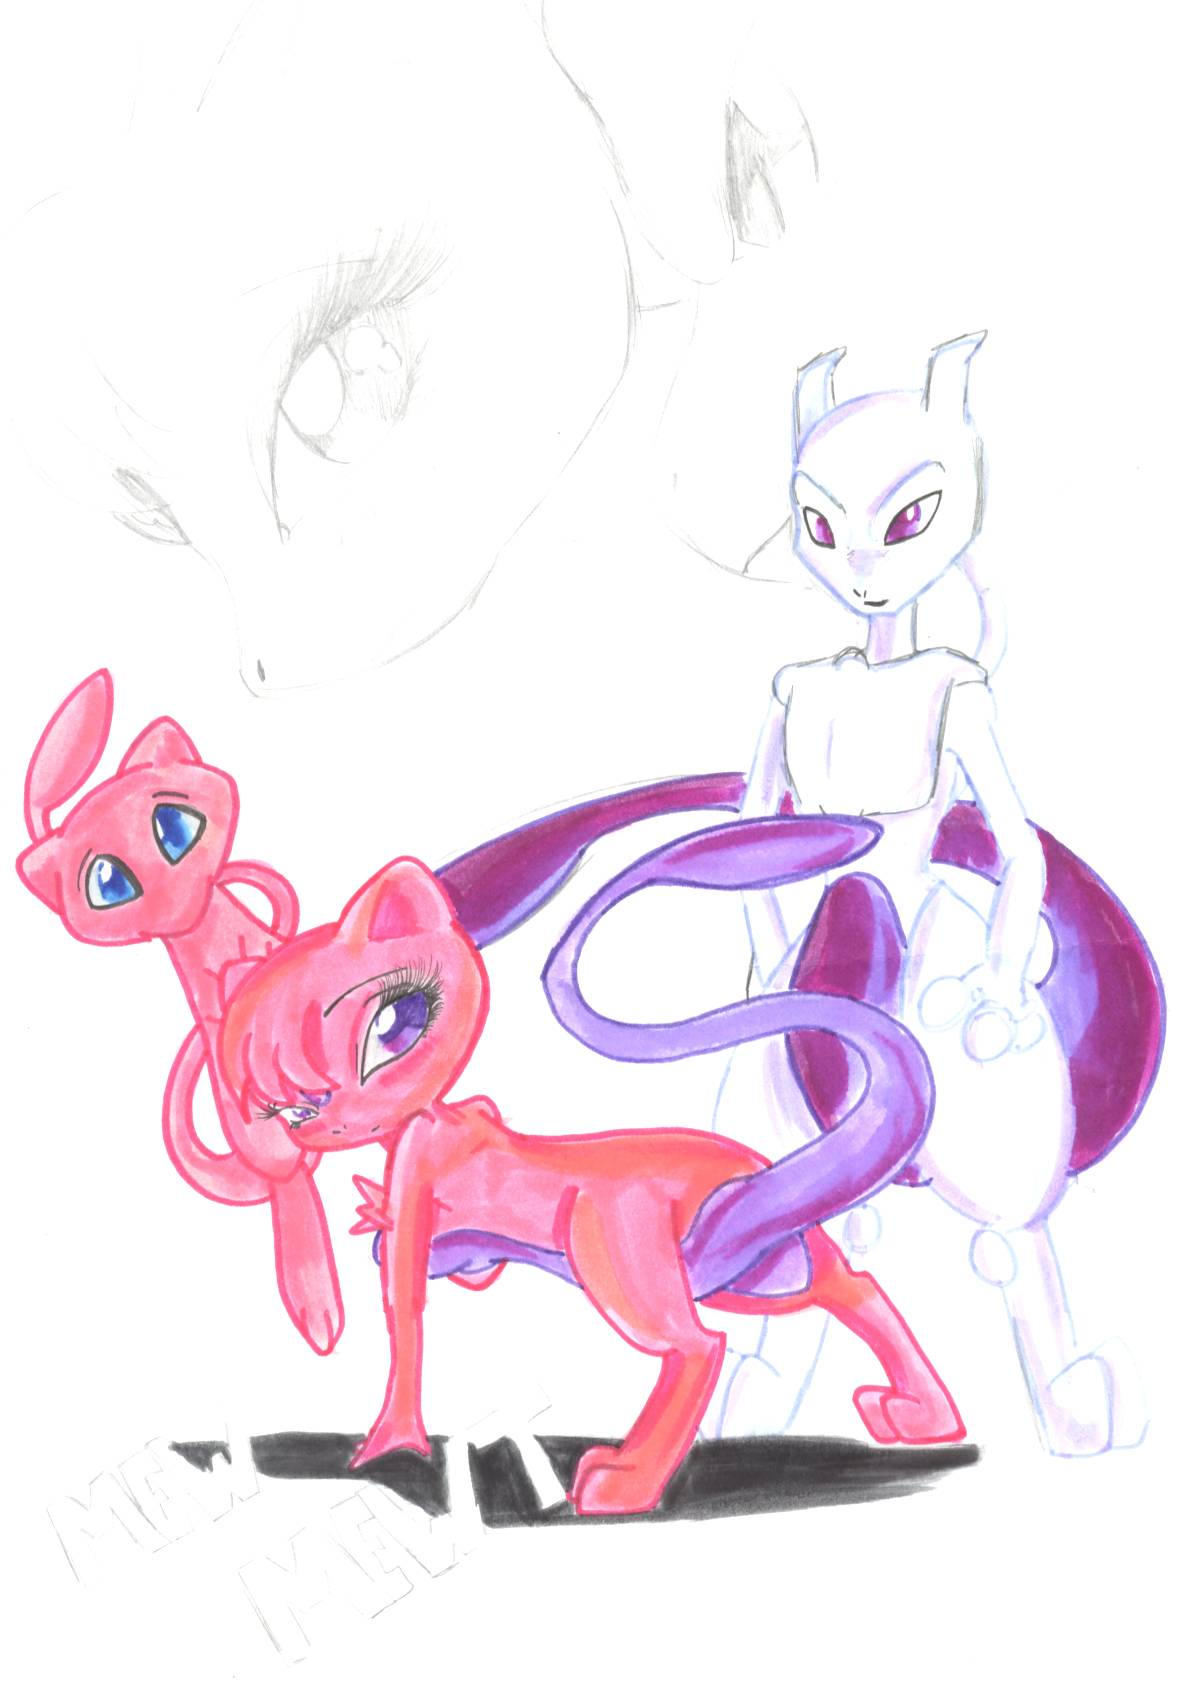 Mewtwo vs mew wallpaper